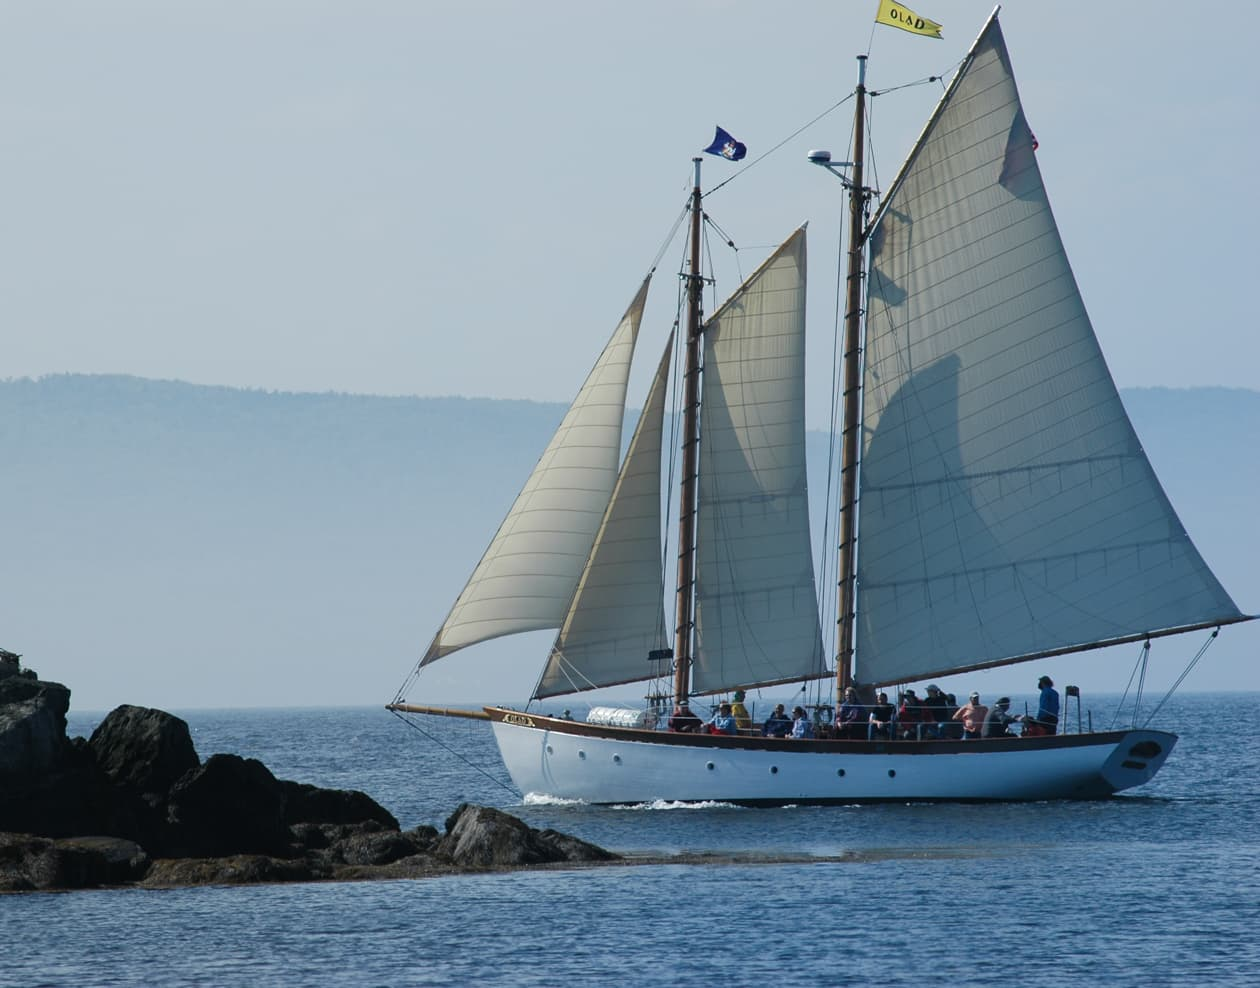 Schooner Olad sailing off the coast of Maine